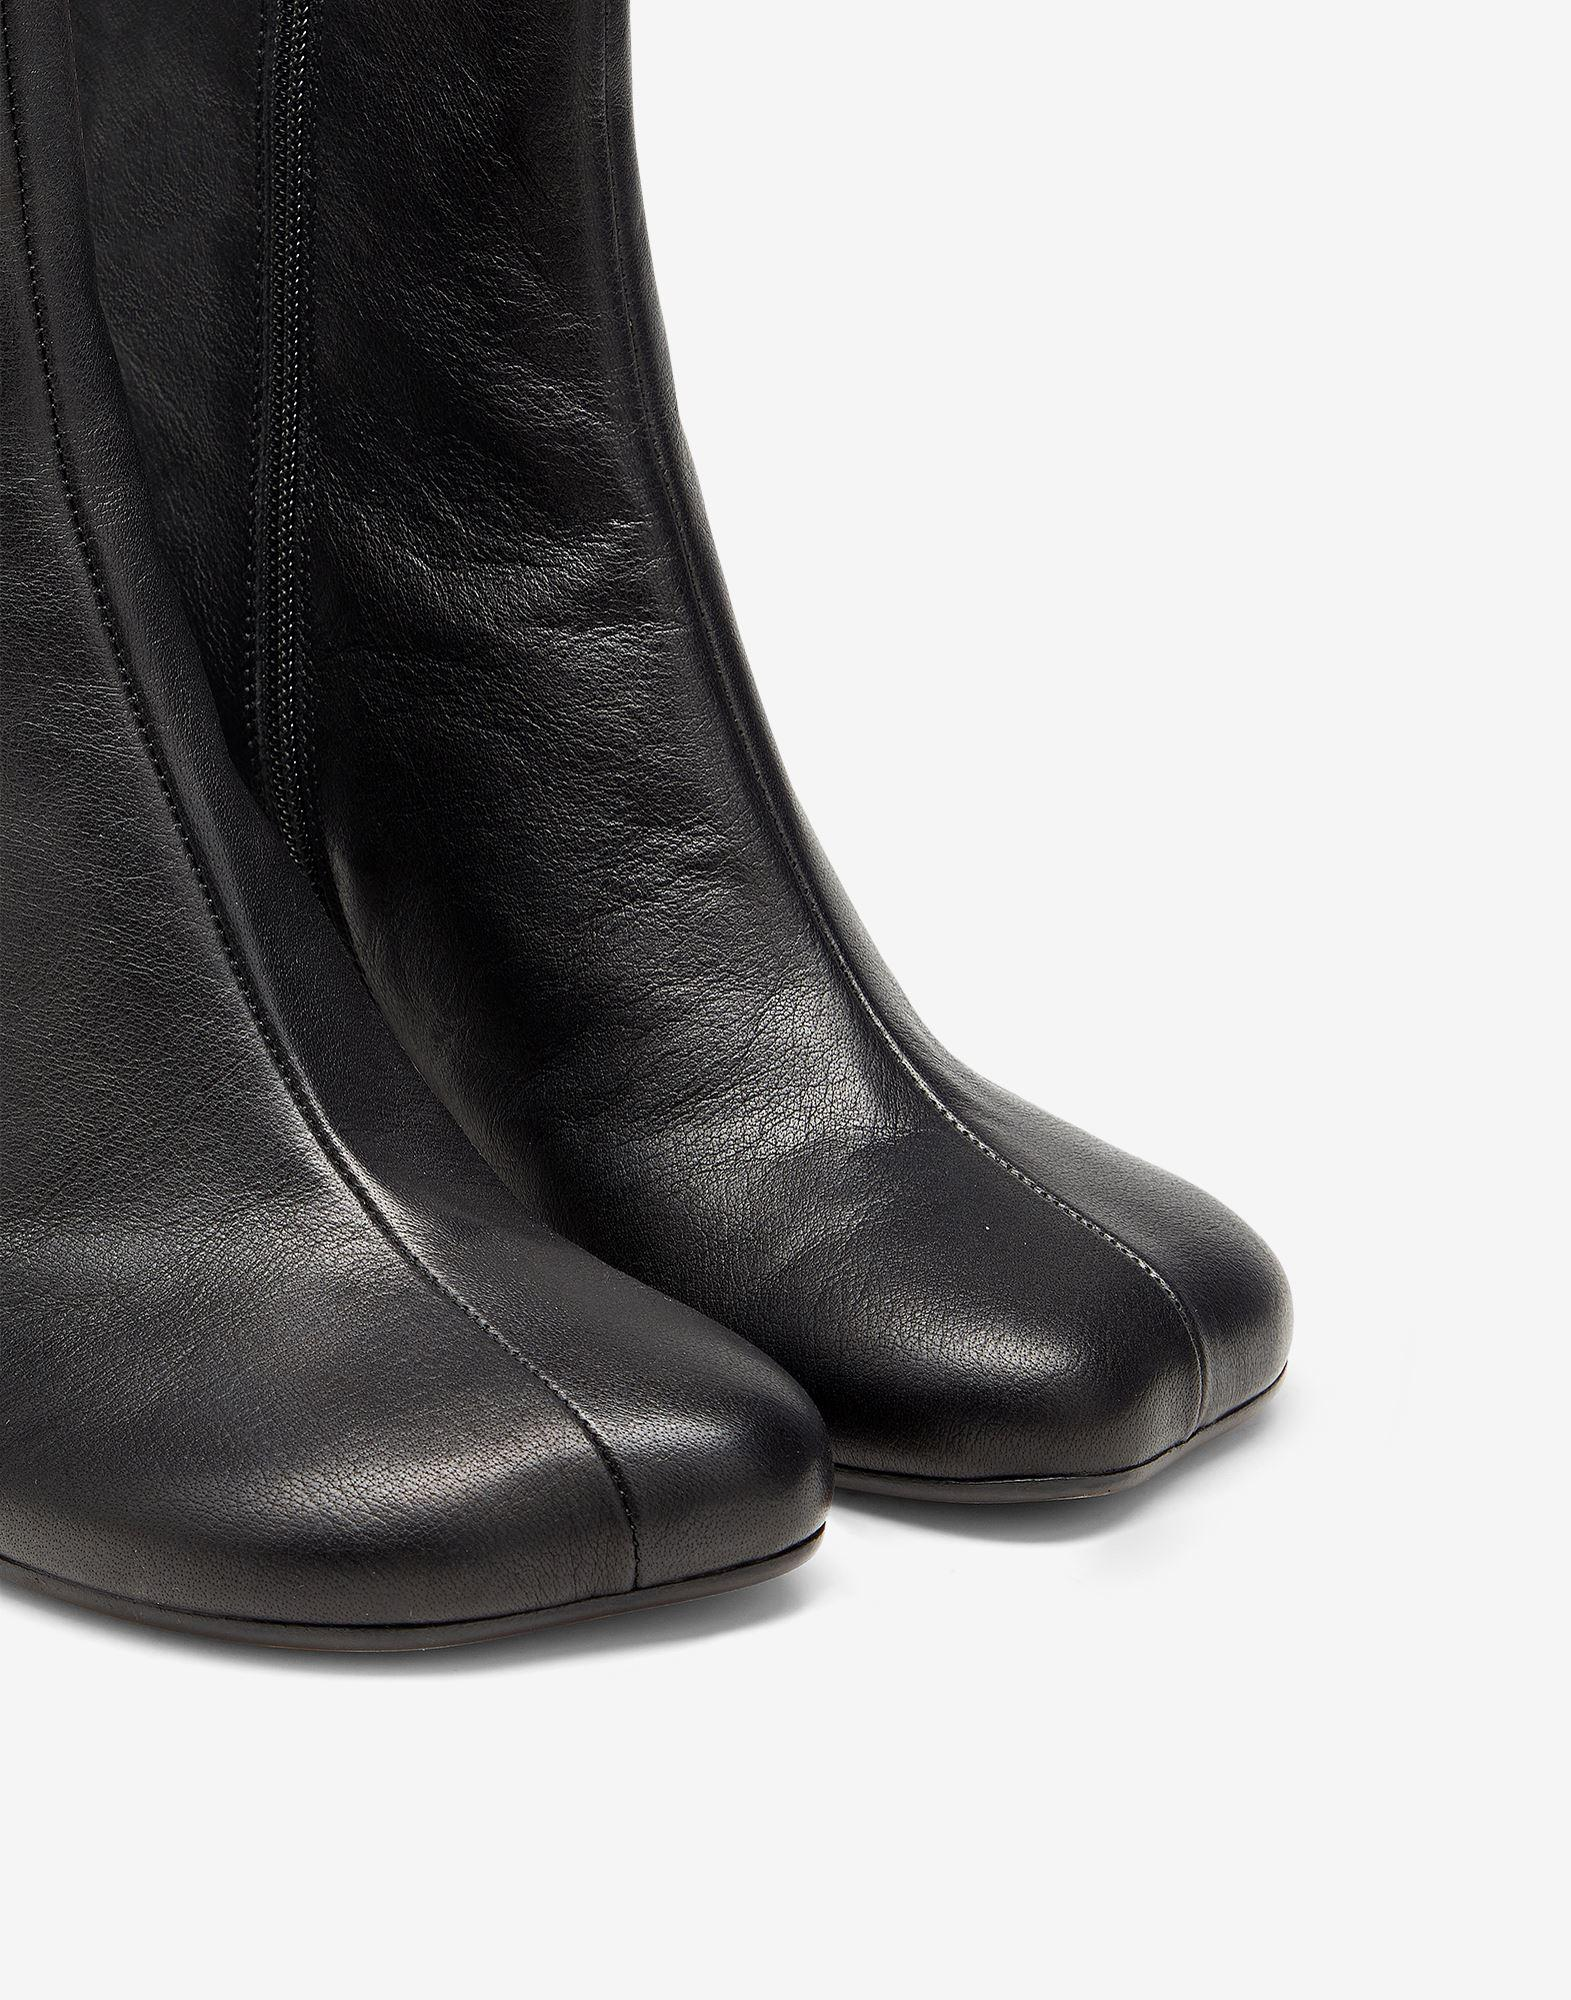 Anatomic ankle boots 4